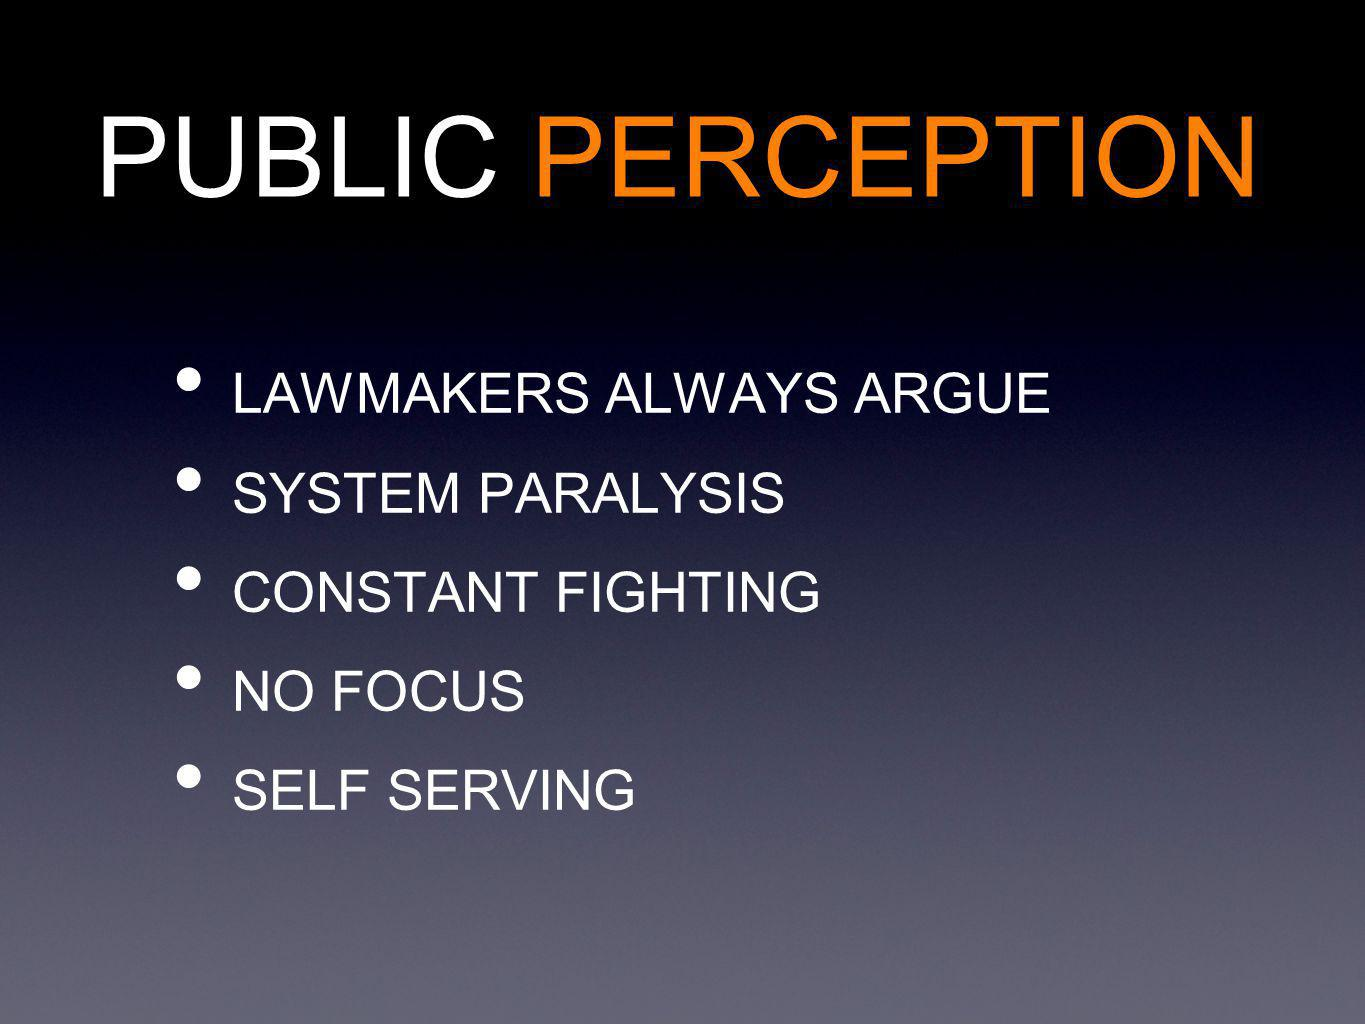 PUBLIC PERCEPTION LAWMAKERS ALWAYS ARGUE SYSTEM PARALYSIS CONSTANT FIGHTING NO FOCUS SELF SERVING